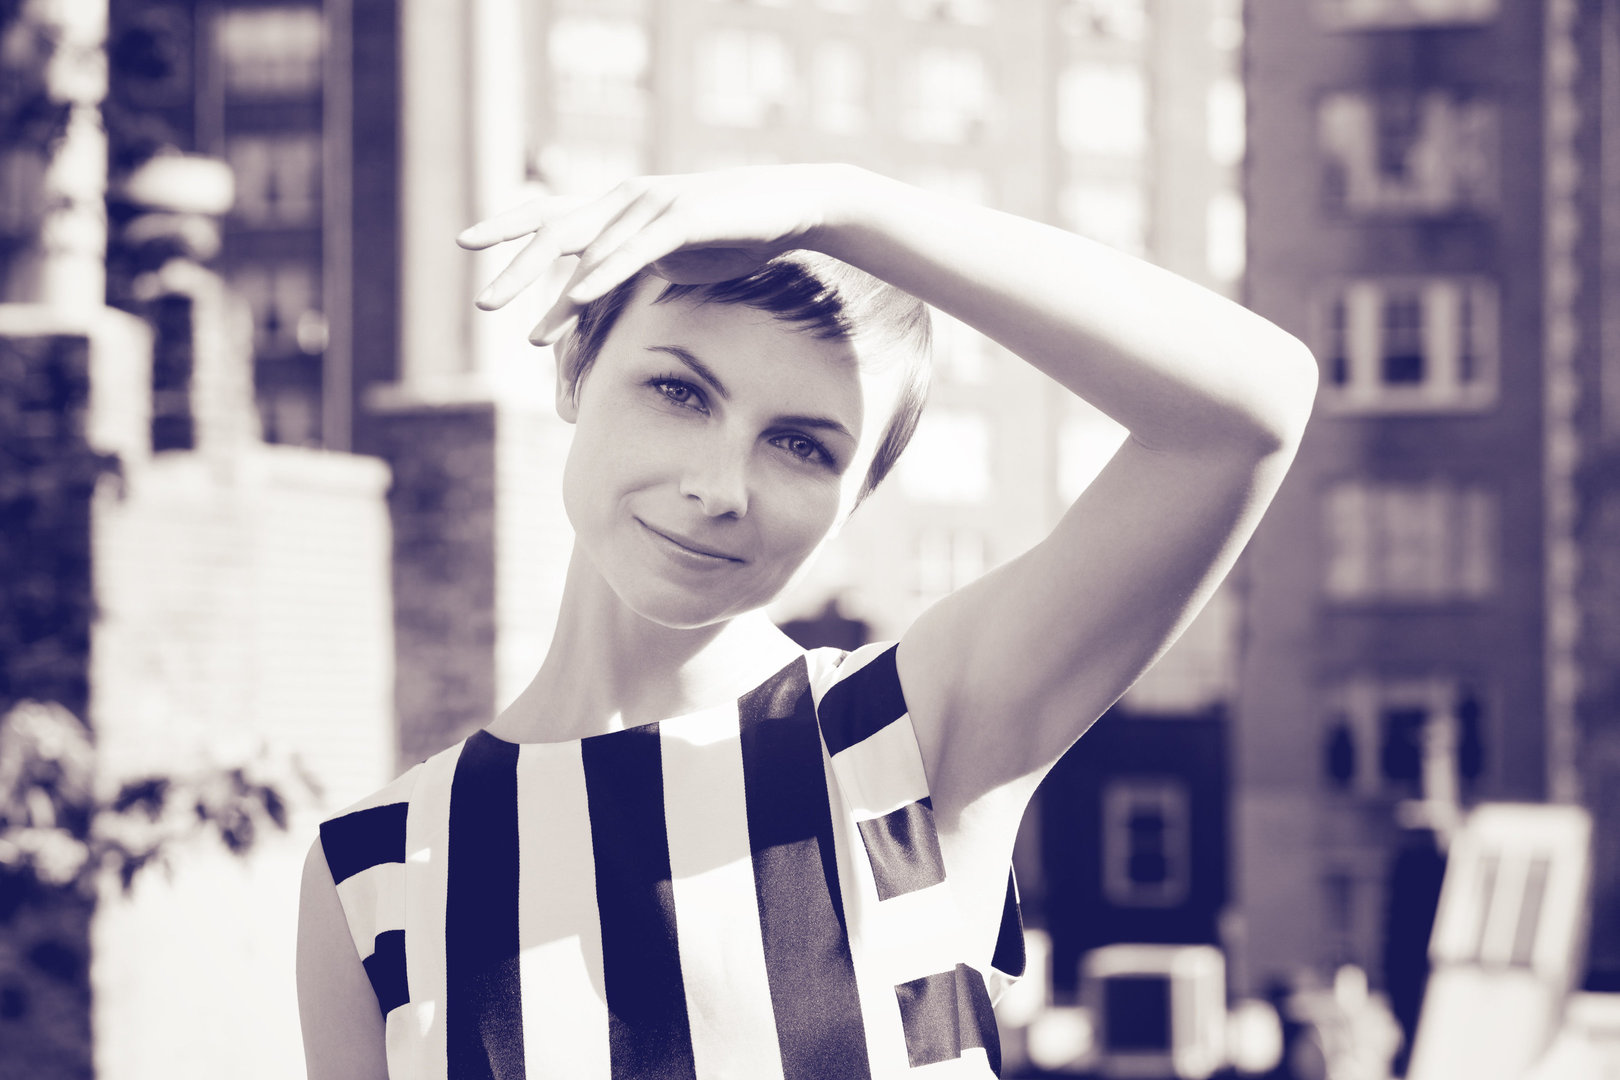 A portrait of Kat Edmonson, her left hand on her head. She has light hair in a pixie haircut, and a striped dress